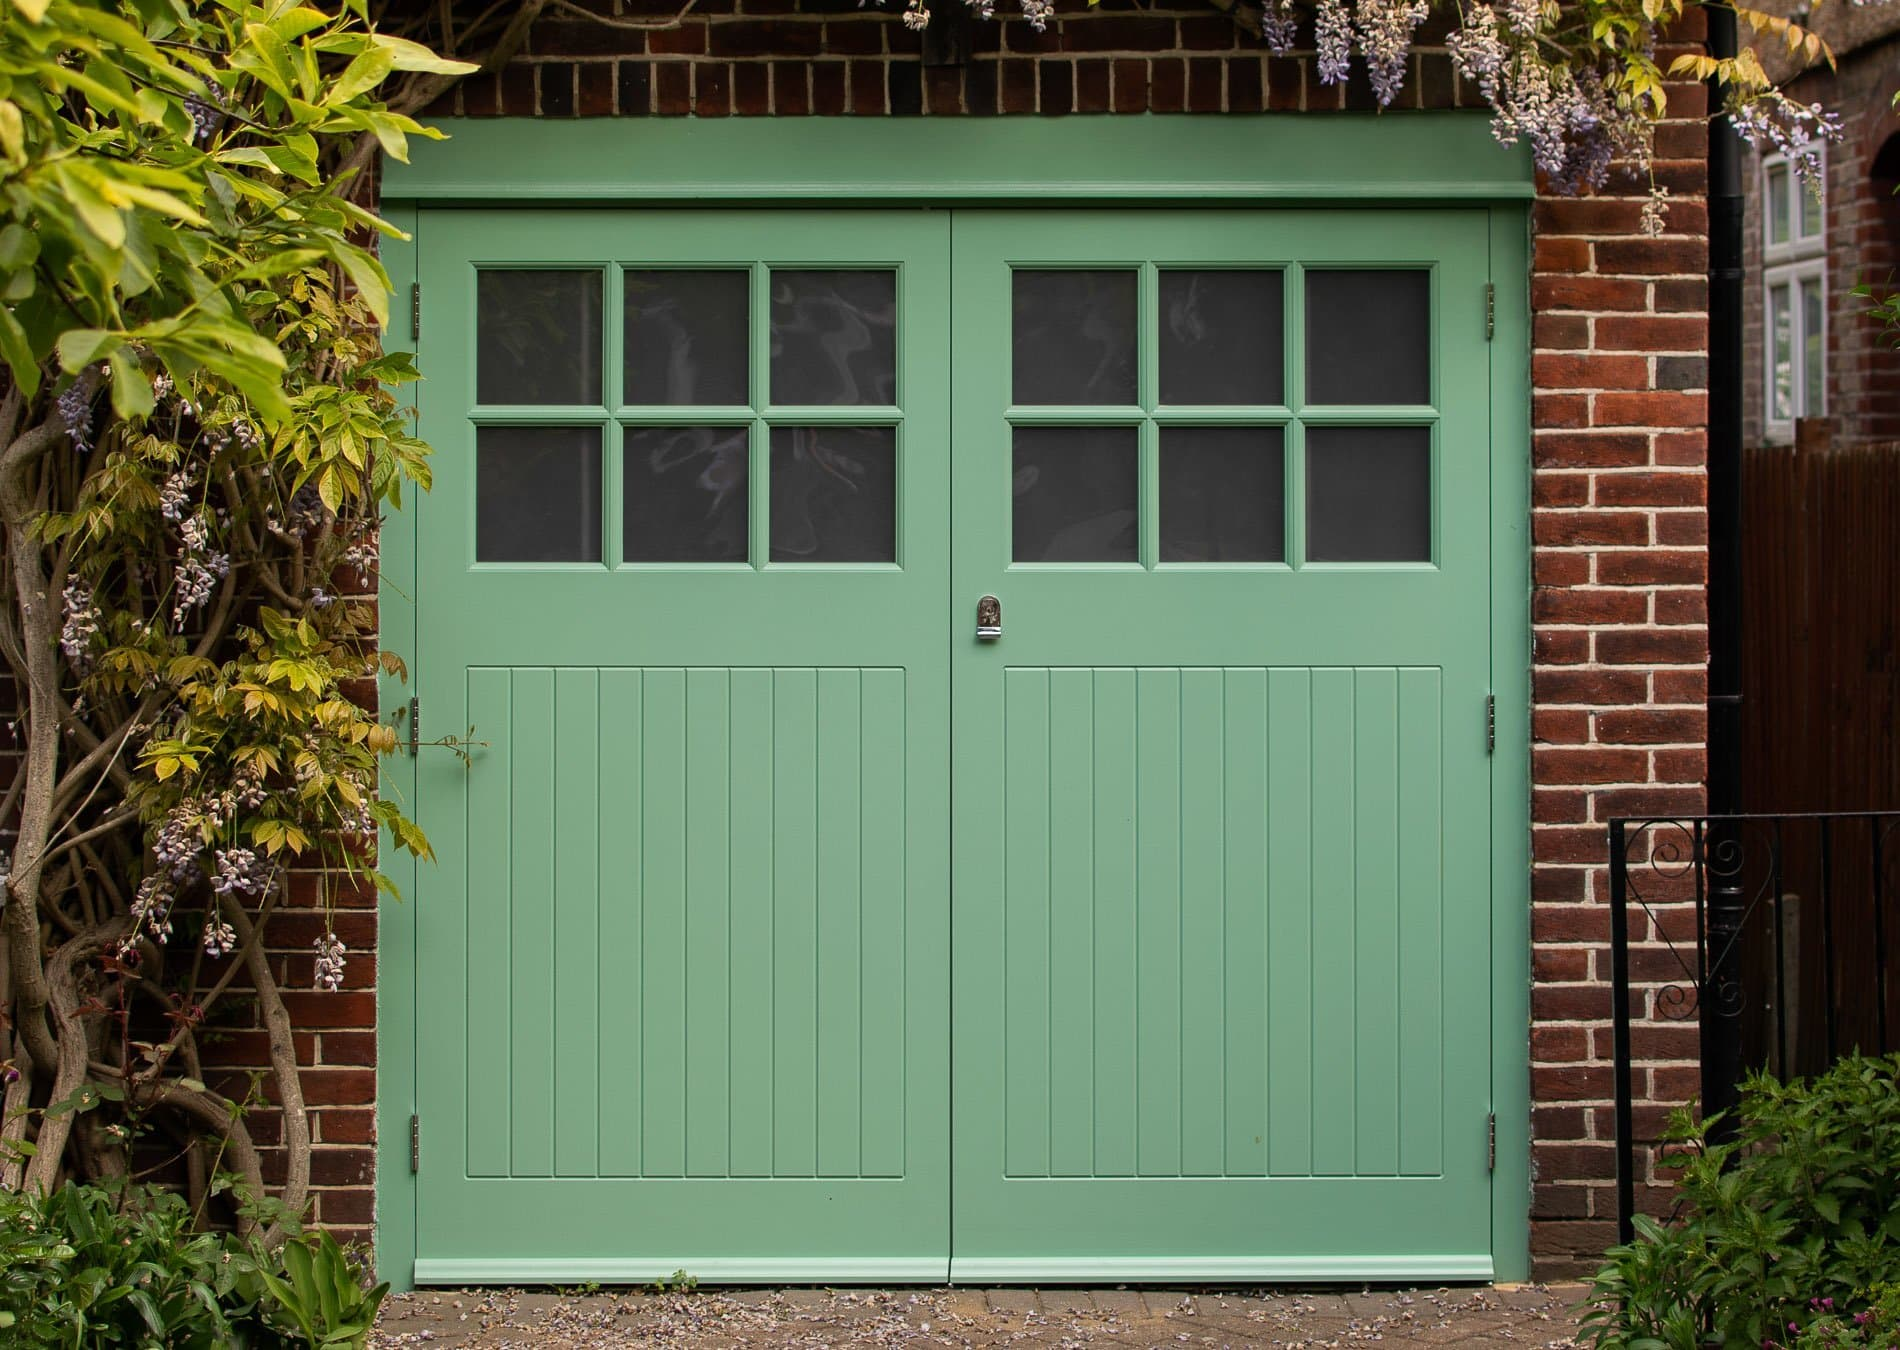 painted bespoke garage doors and frame. door have glass in the top part